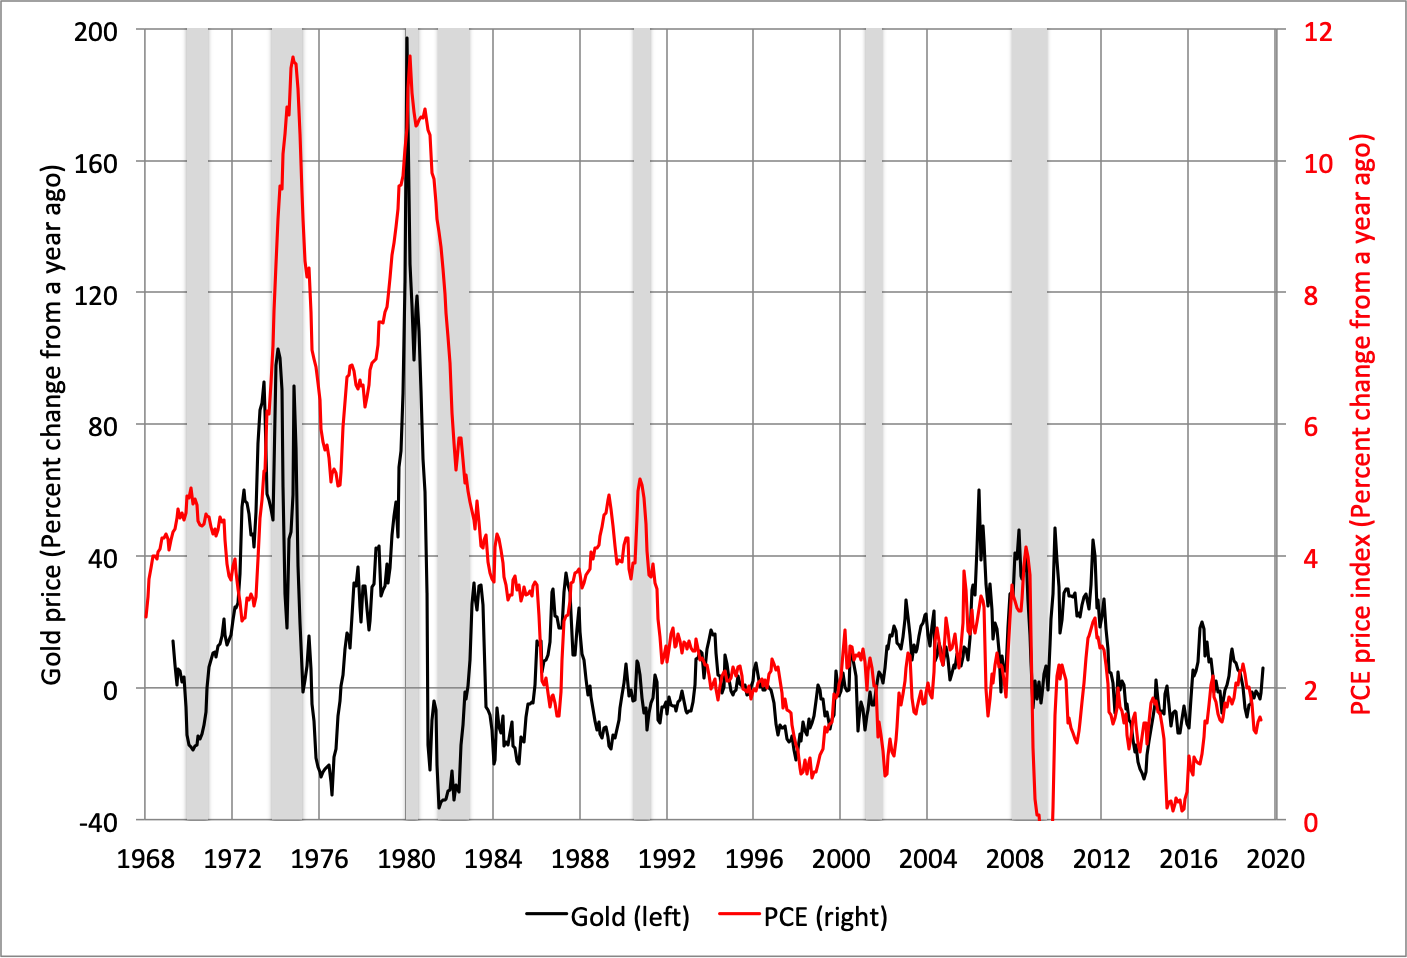 Note: Shaded areas denote recessions. Source: FRED.